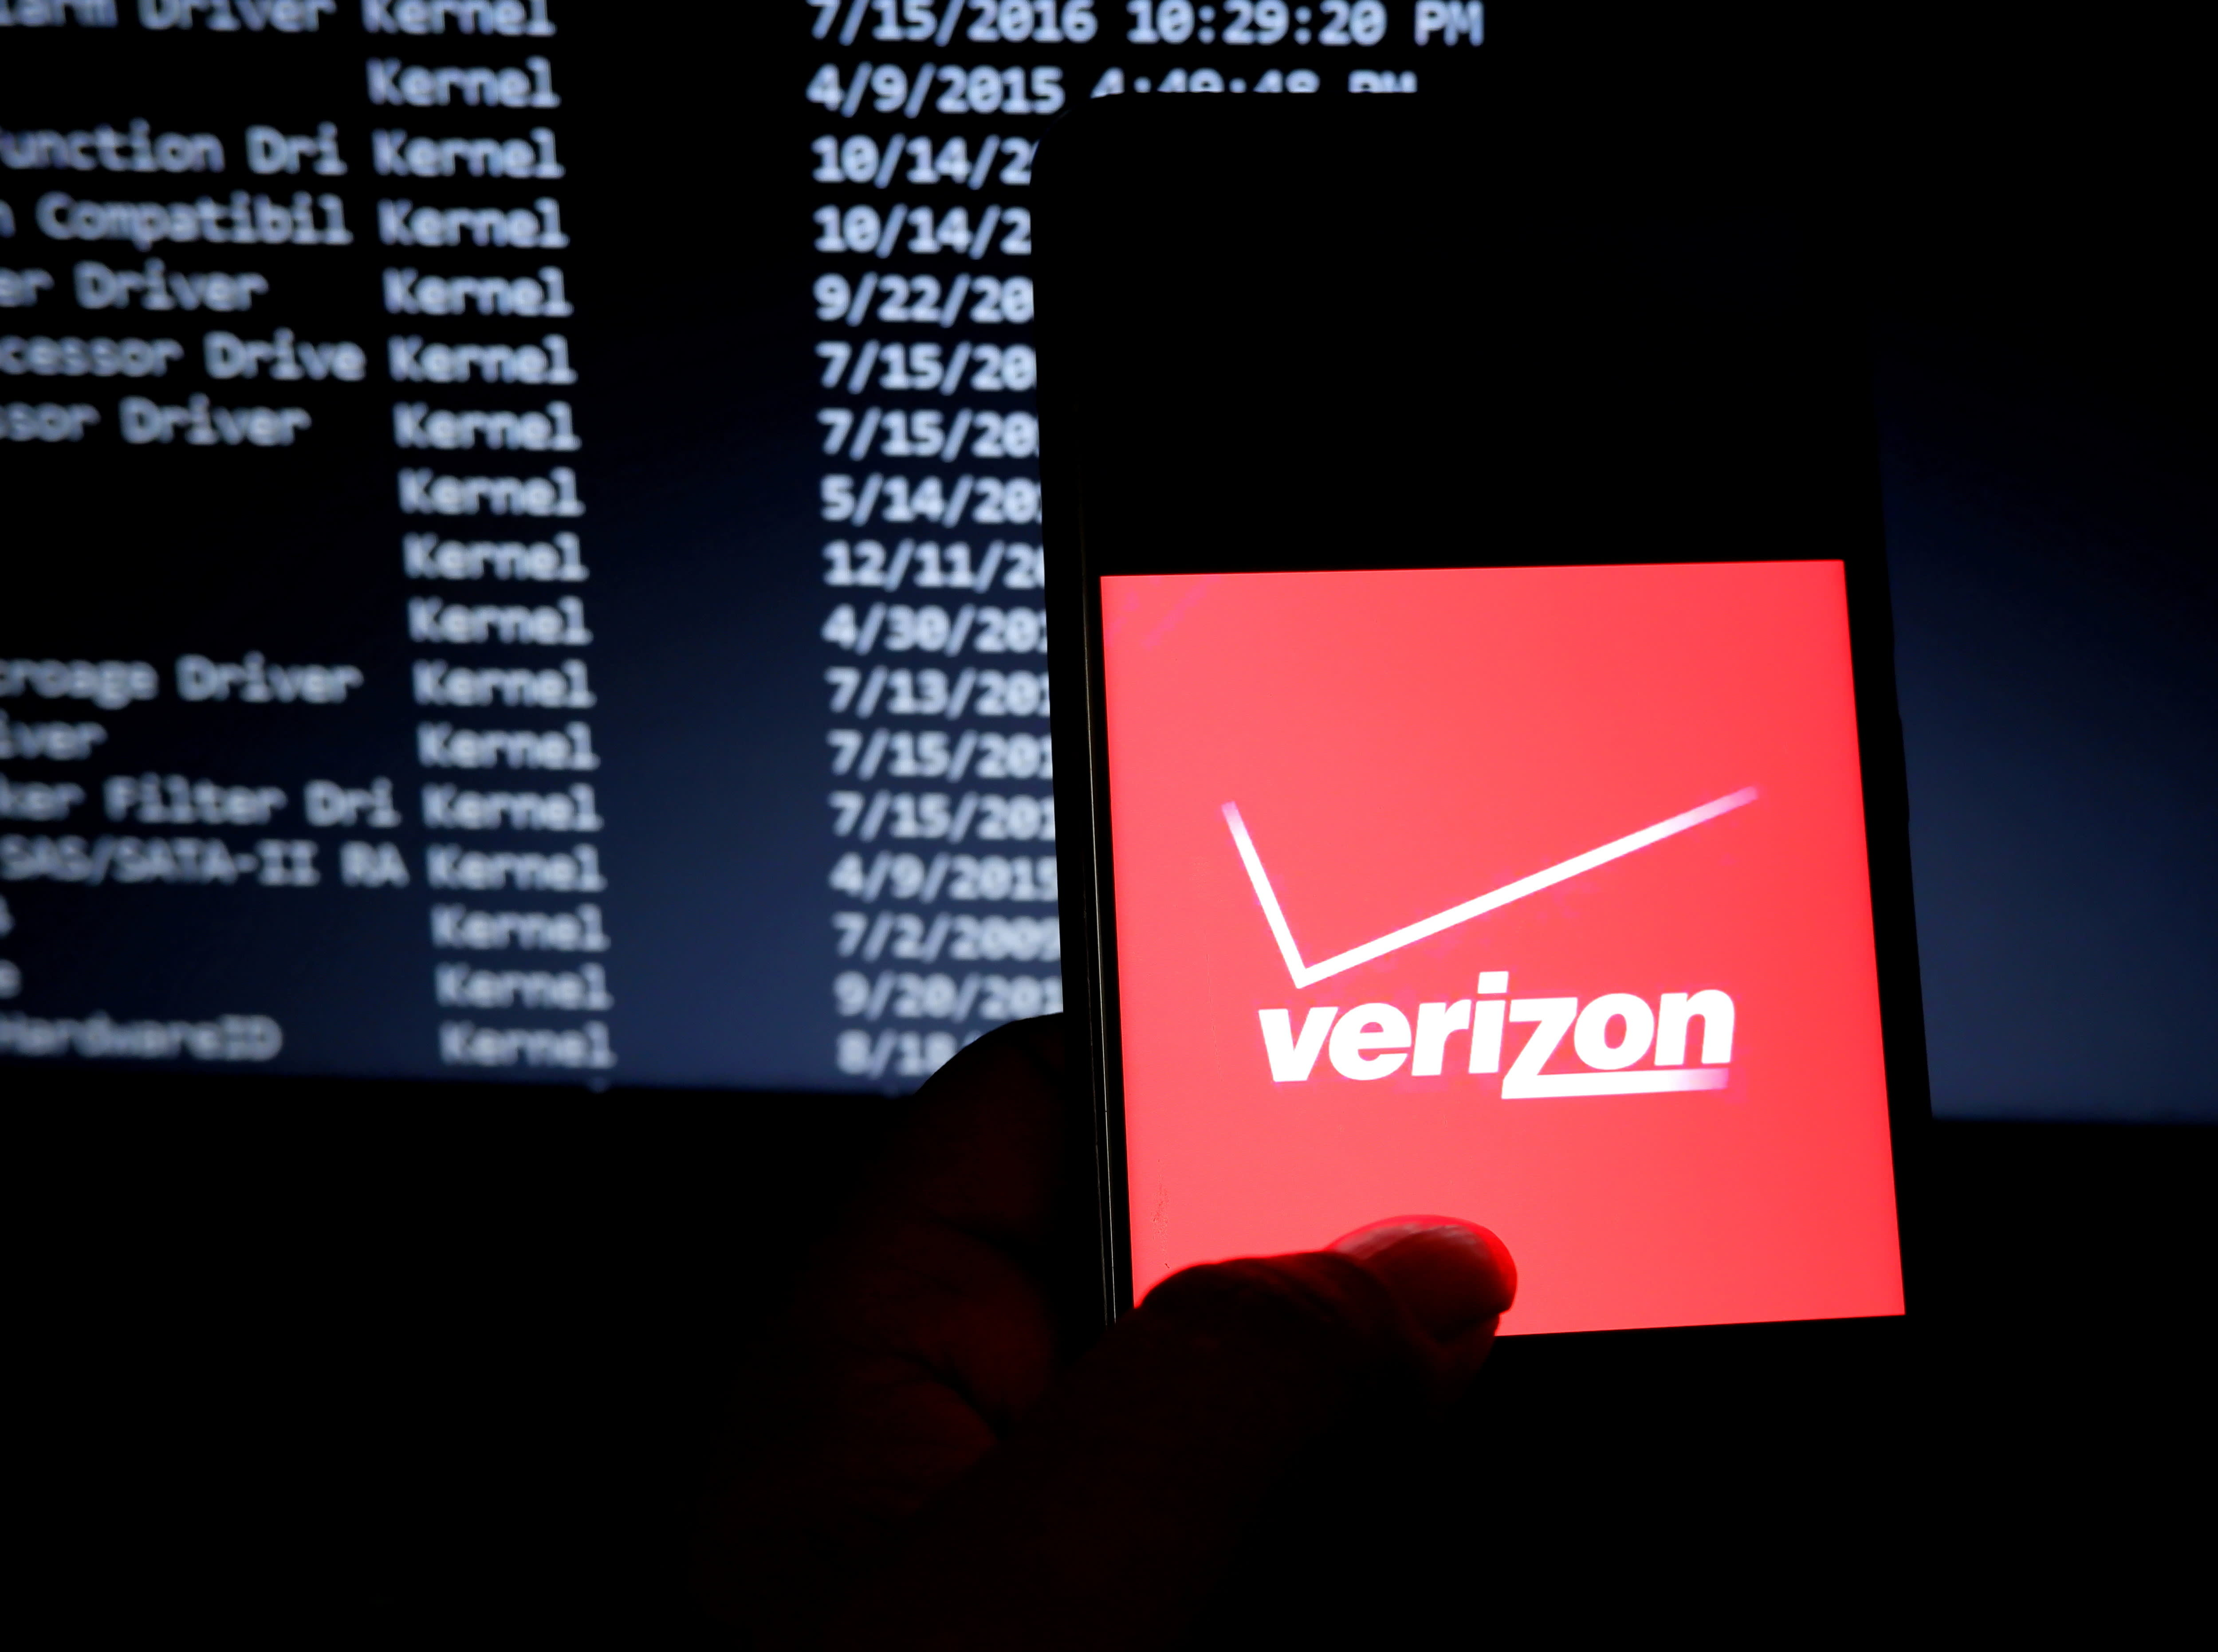 Verizon partners with Amazon to use tech giant's satellite internet system for rural broadband